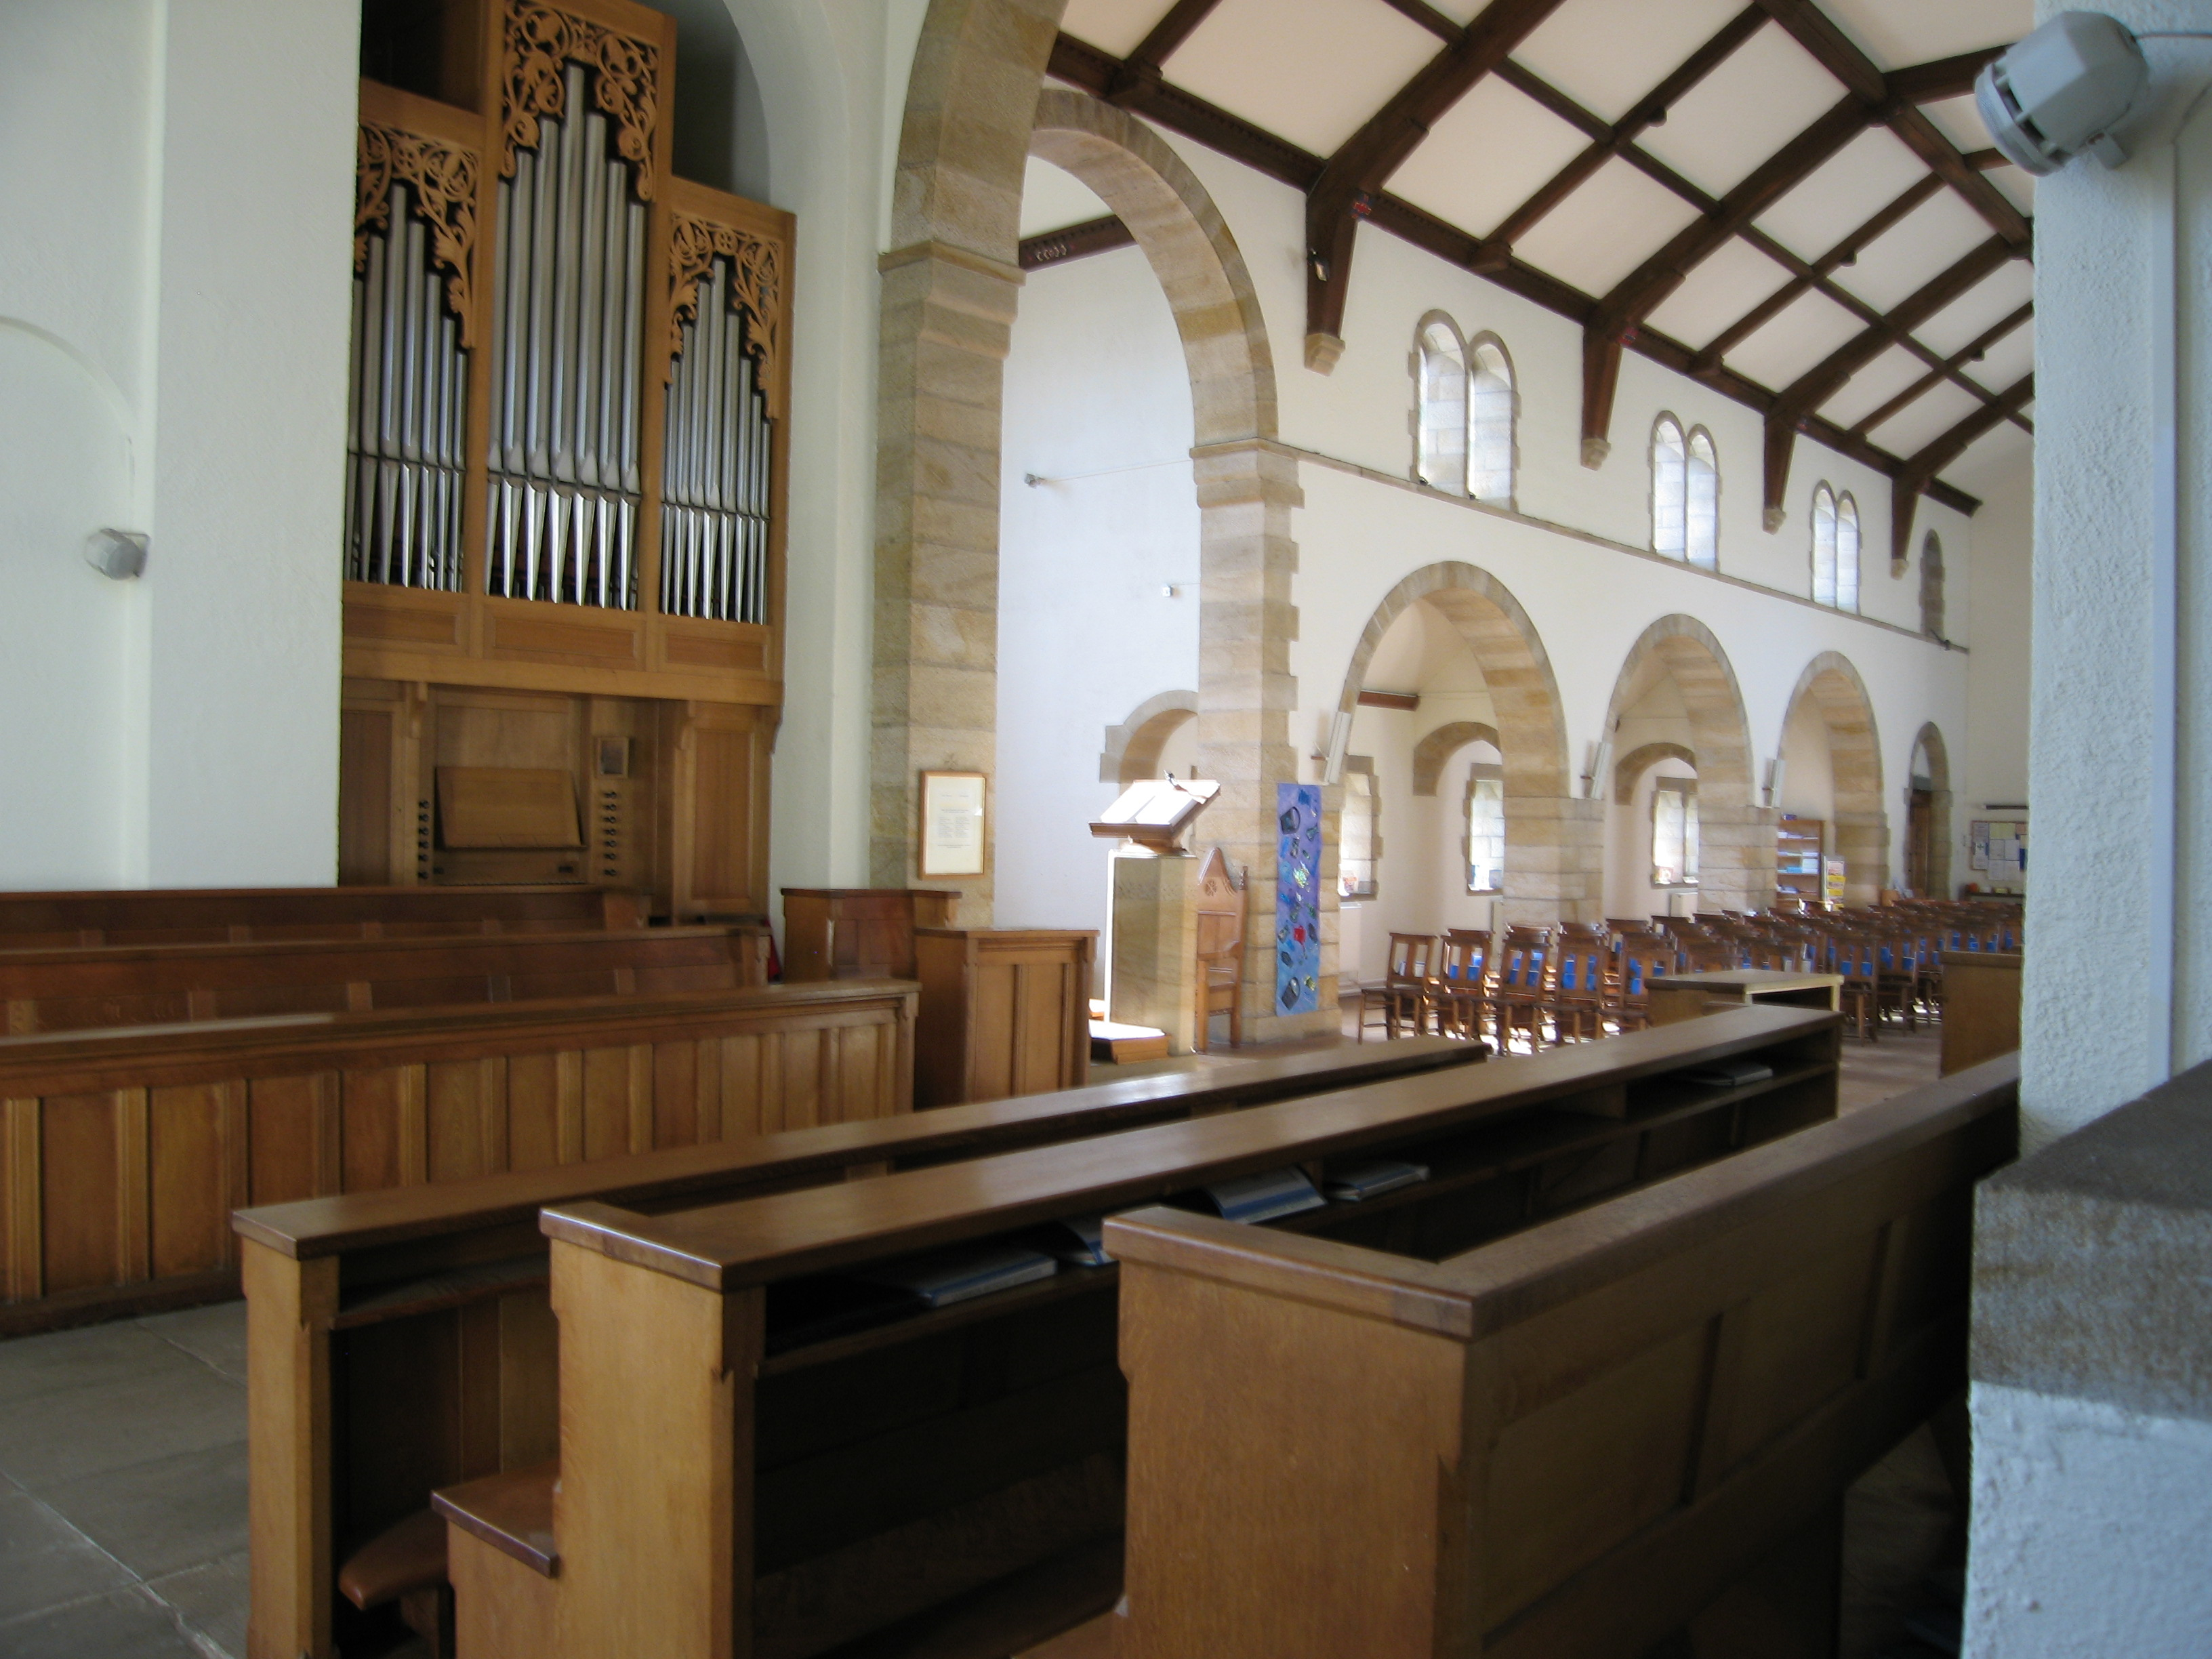 Choir stalls and the organ